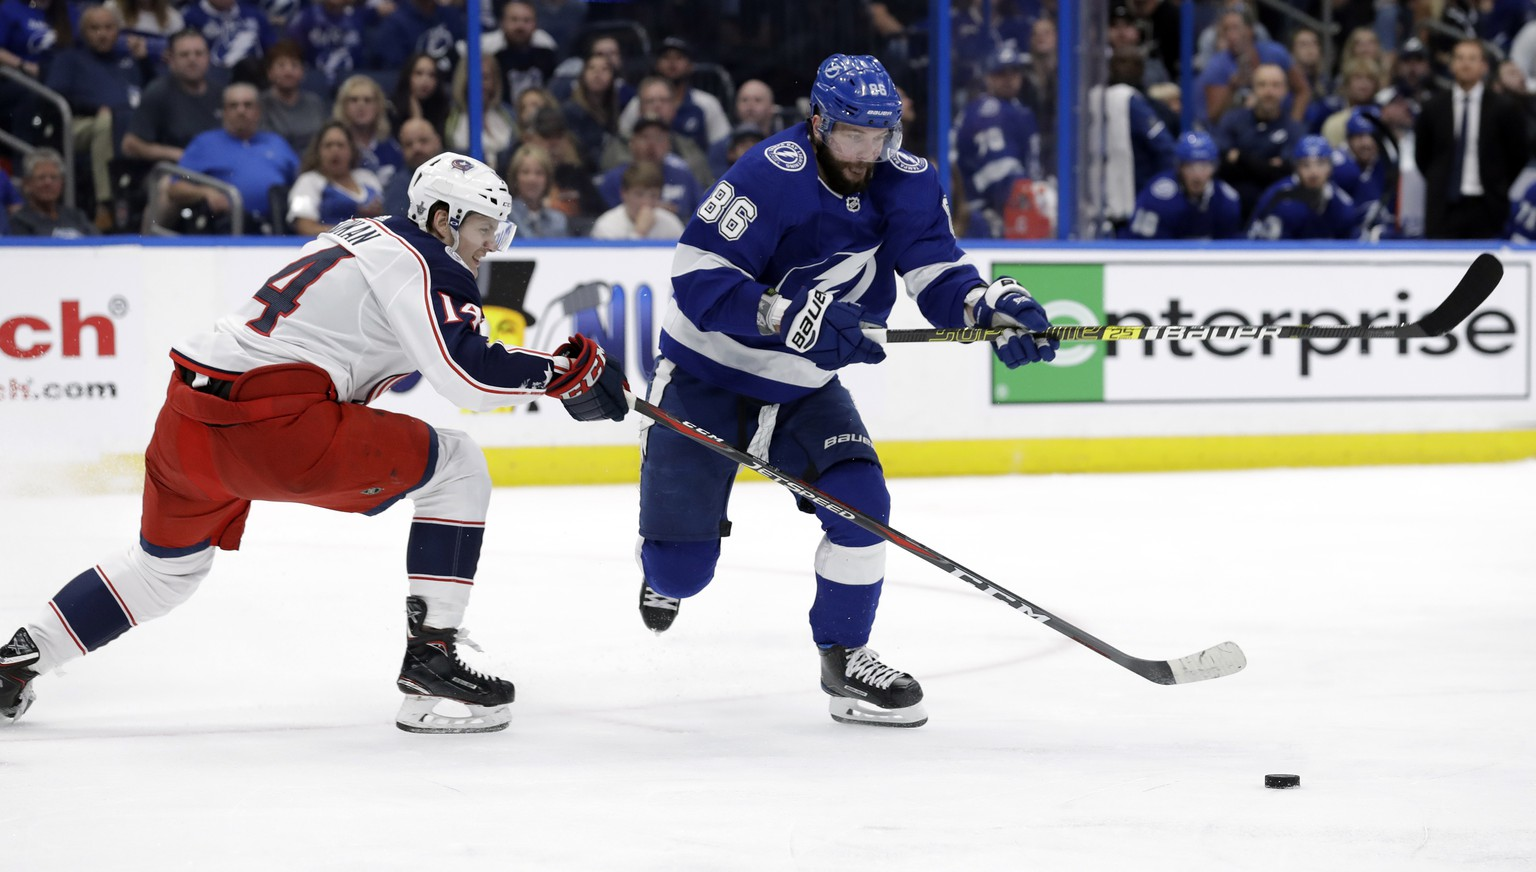 Columbus Blue Jackets defenseman Dean Kukan (14) tips the puck away from Tampa Bay Lightning right wing Nikita Kucherov (86) during the second period of Game 1 of an NHL Eastern Conference first-round hockey playoff series Wednesday, April 10, 2019, in Tampa, Fla. (AP Photo/Chris O'Meara)